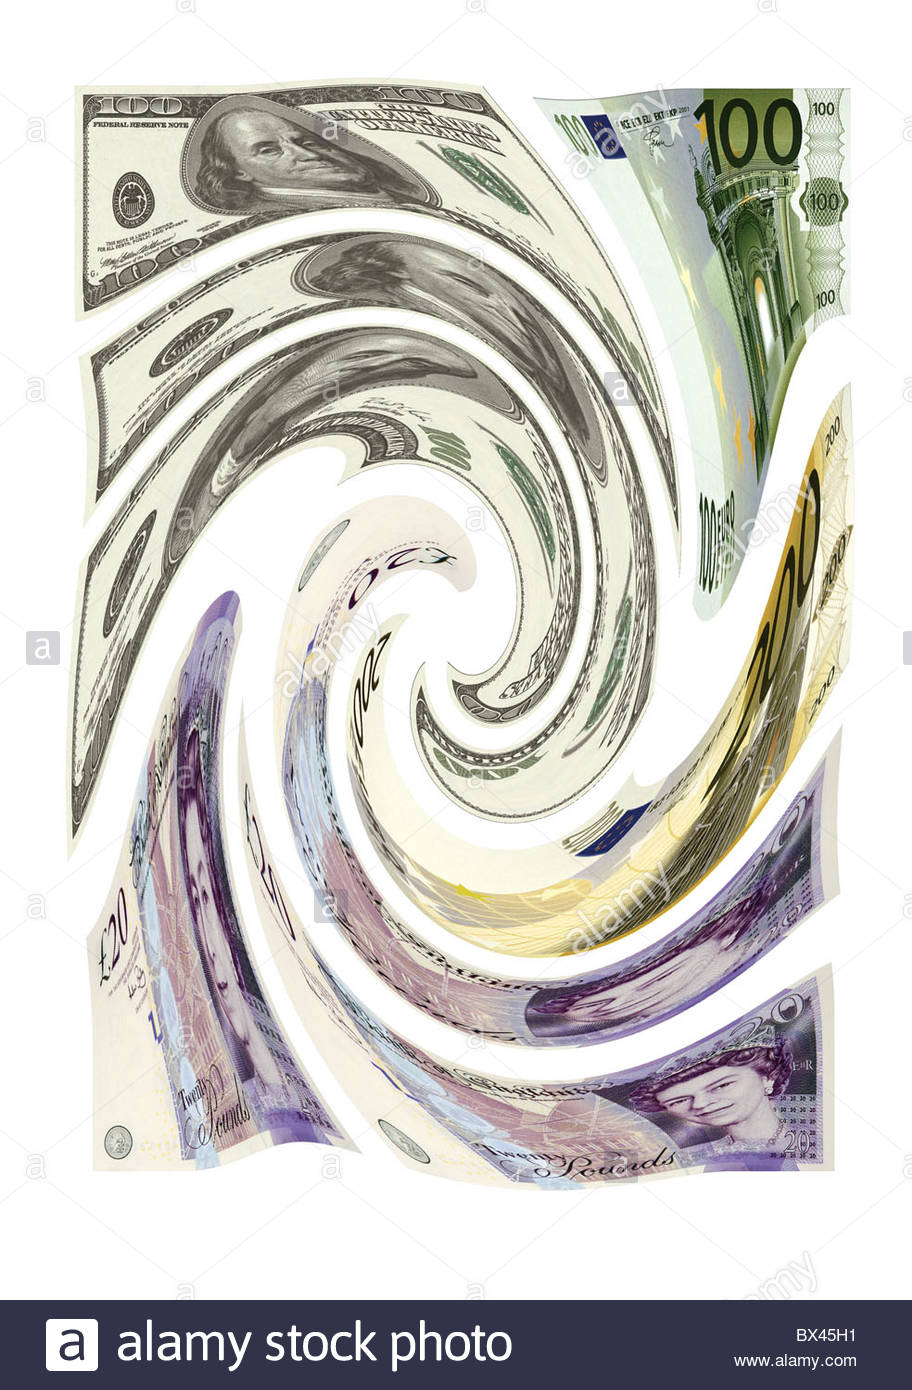 Dollars, Pounds sterling and Euros banknotes all in a swirling motion Stock Photo